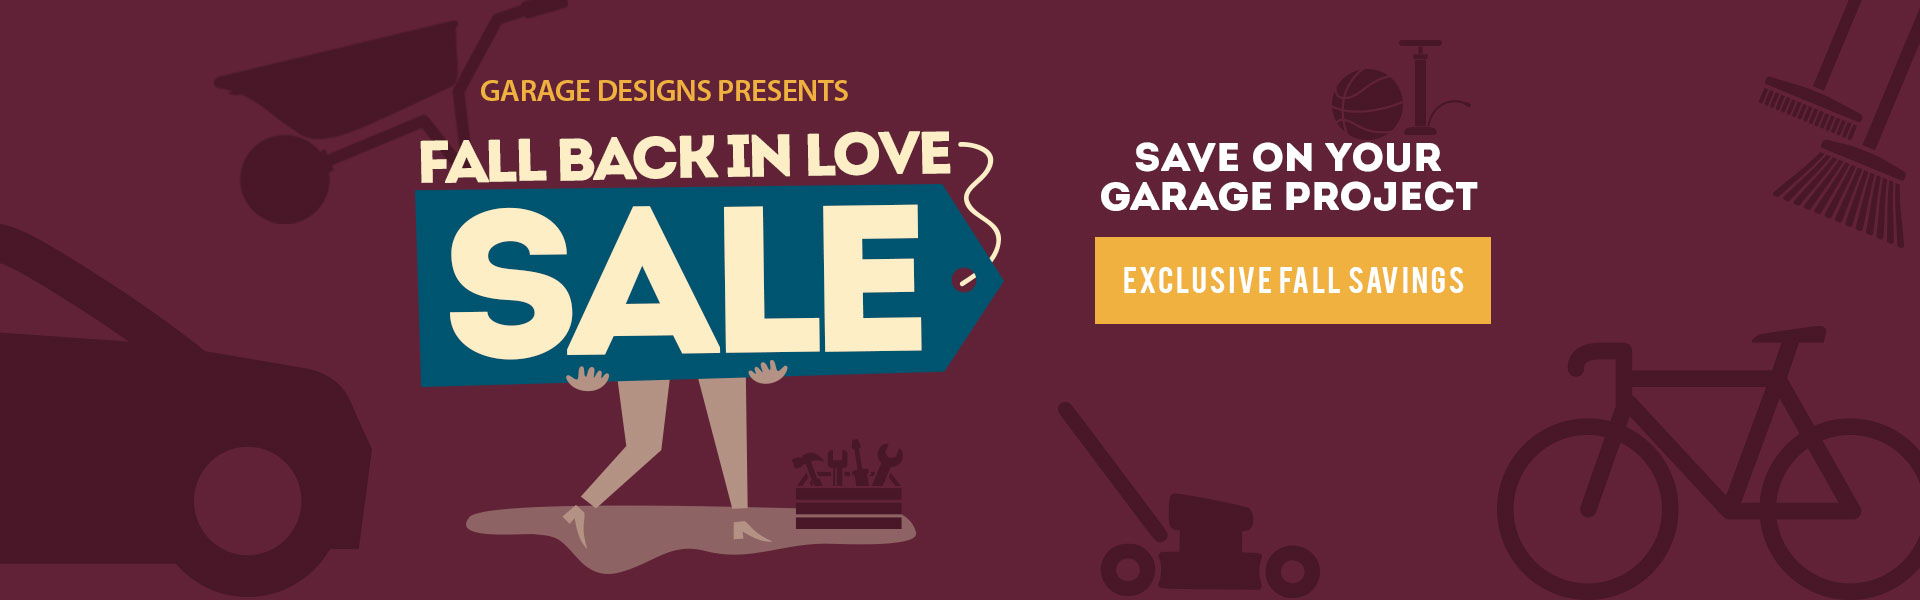 Fall Back In Love Sale - Exclusive Savings